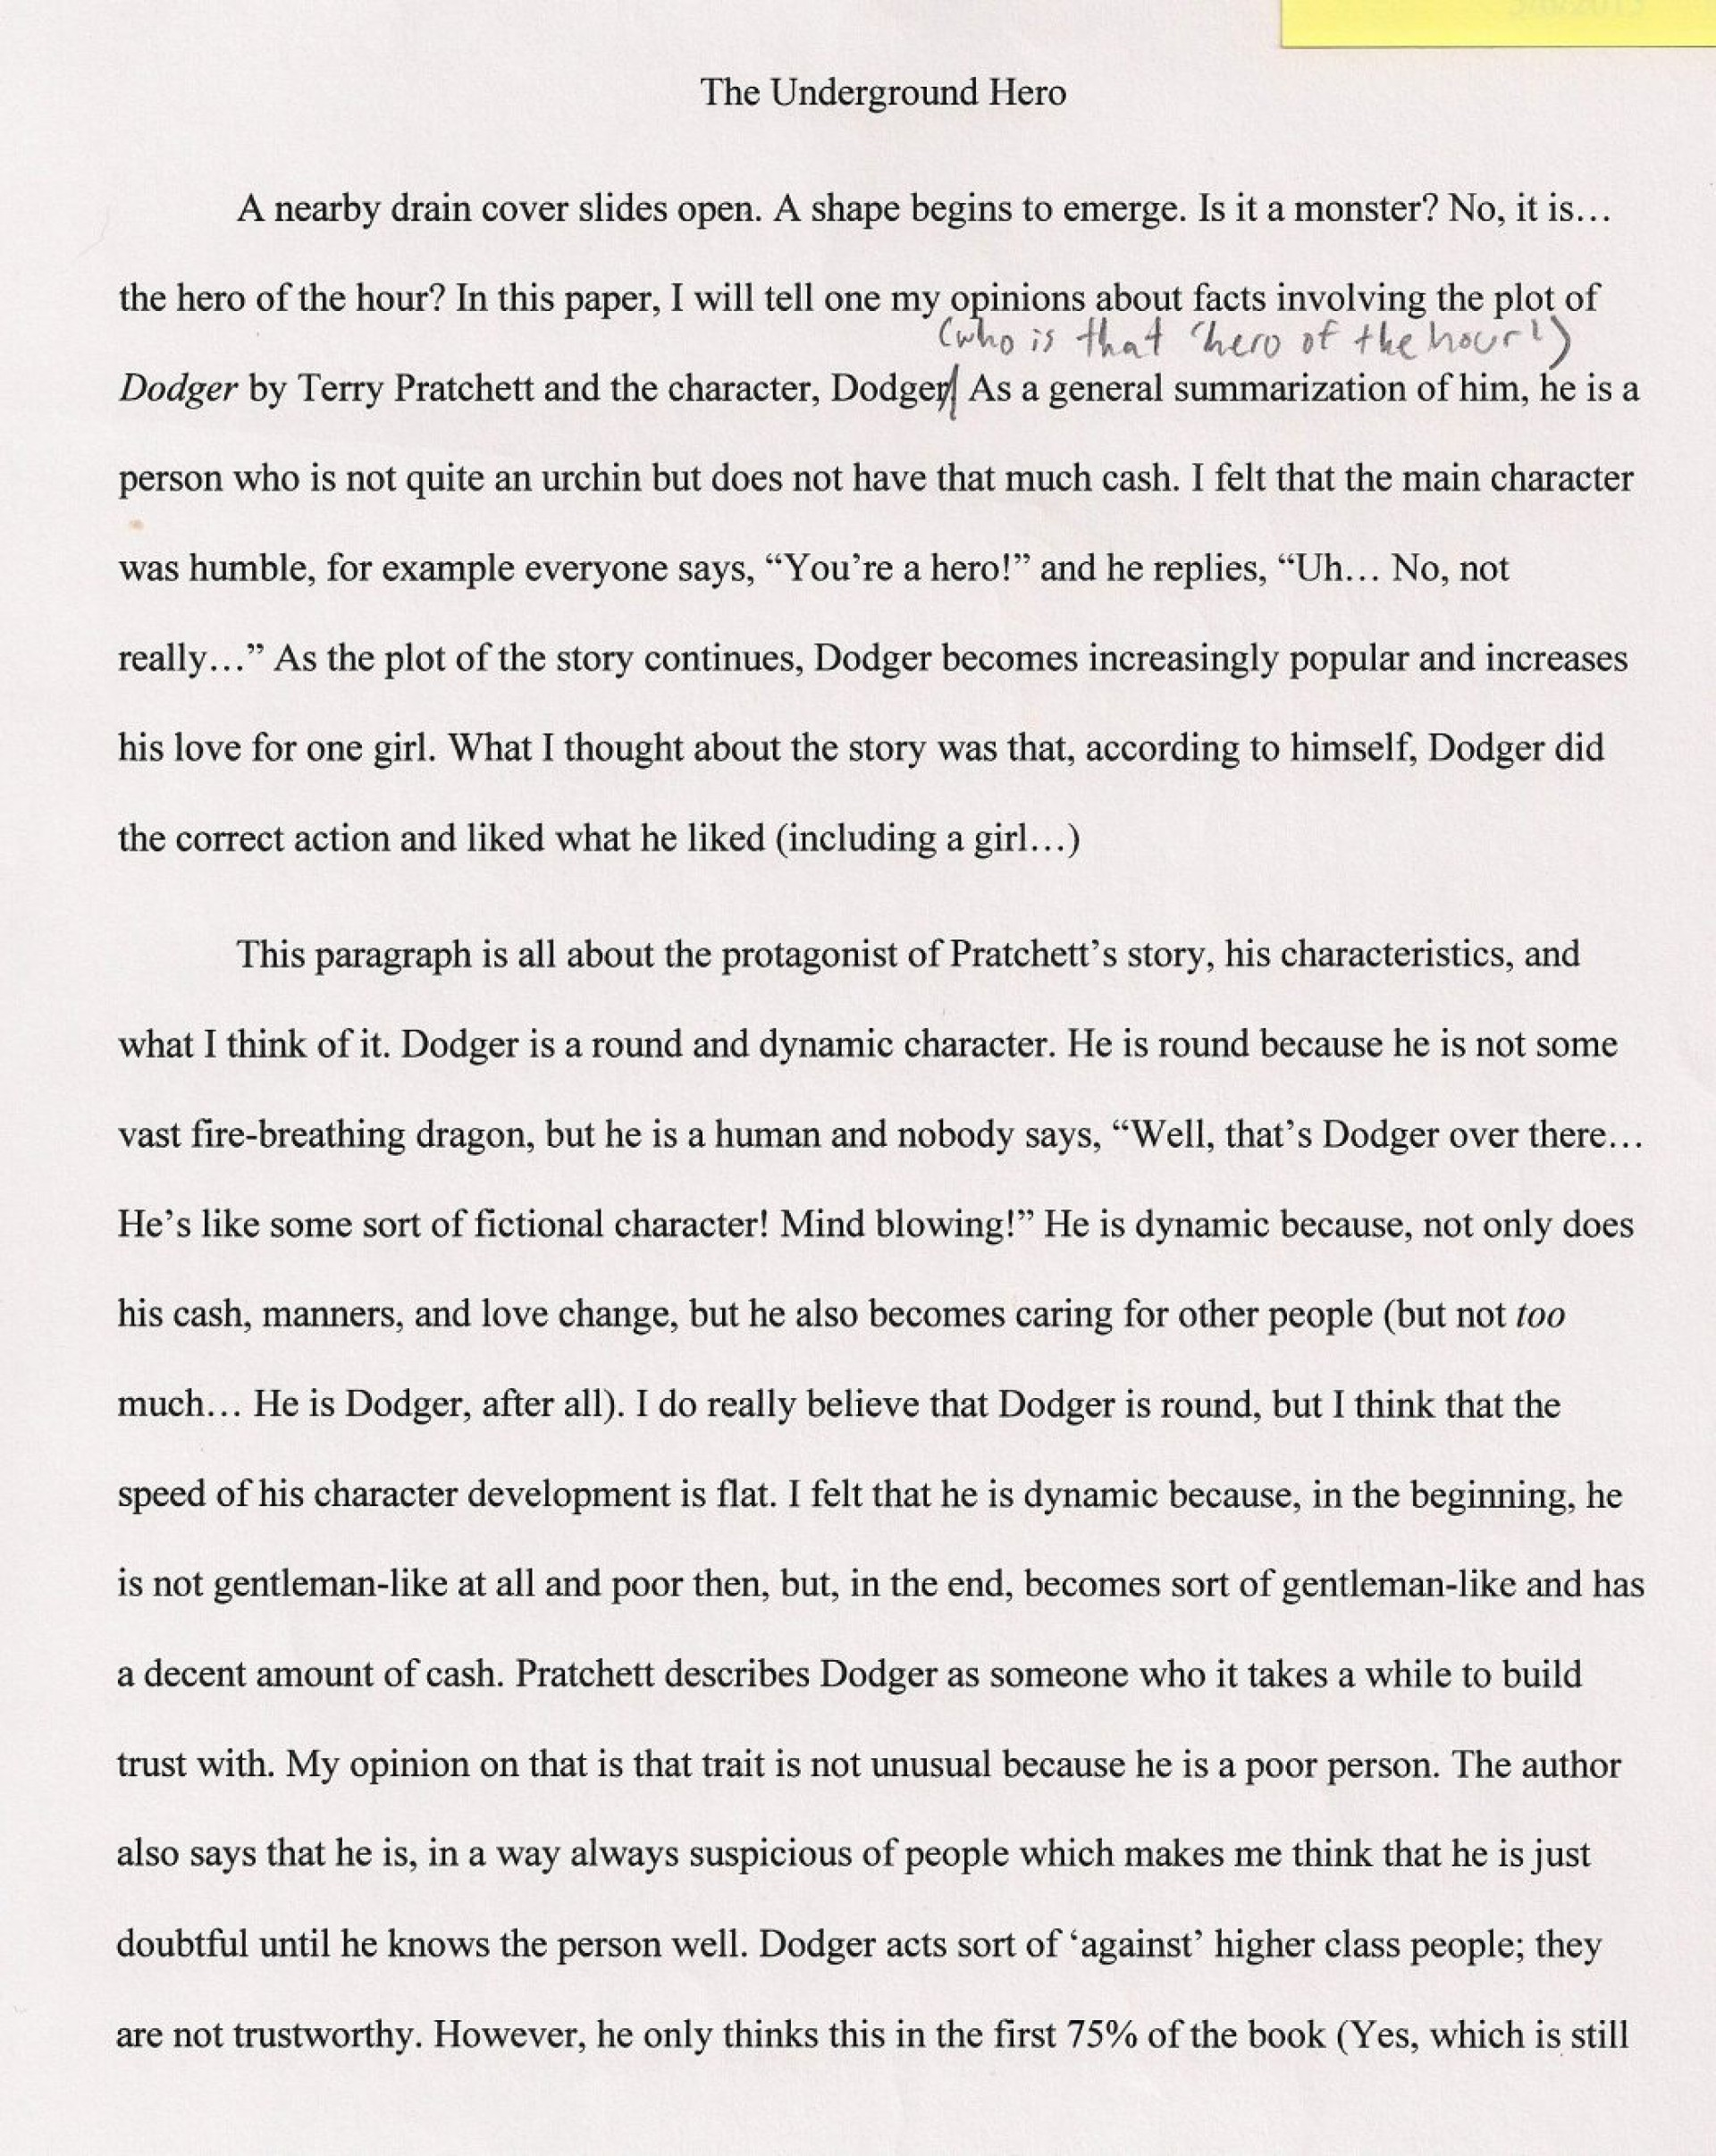 006 My Hero Essays On Heroes Good Writing What To Write Argumentative About The Undergro Should I 1048x1317 Staggering Essay Examples Michigan Superhero 1920